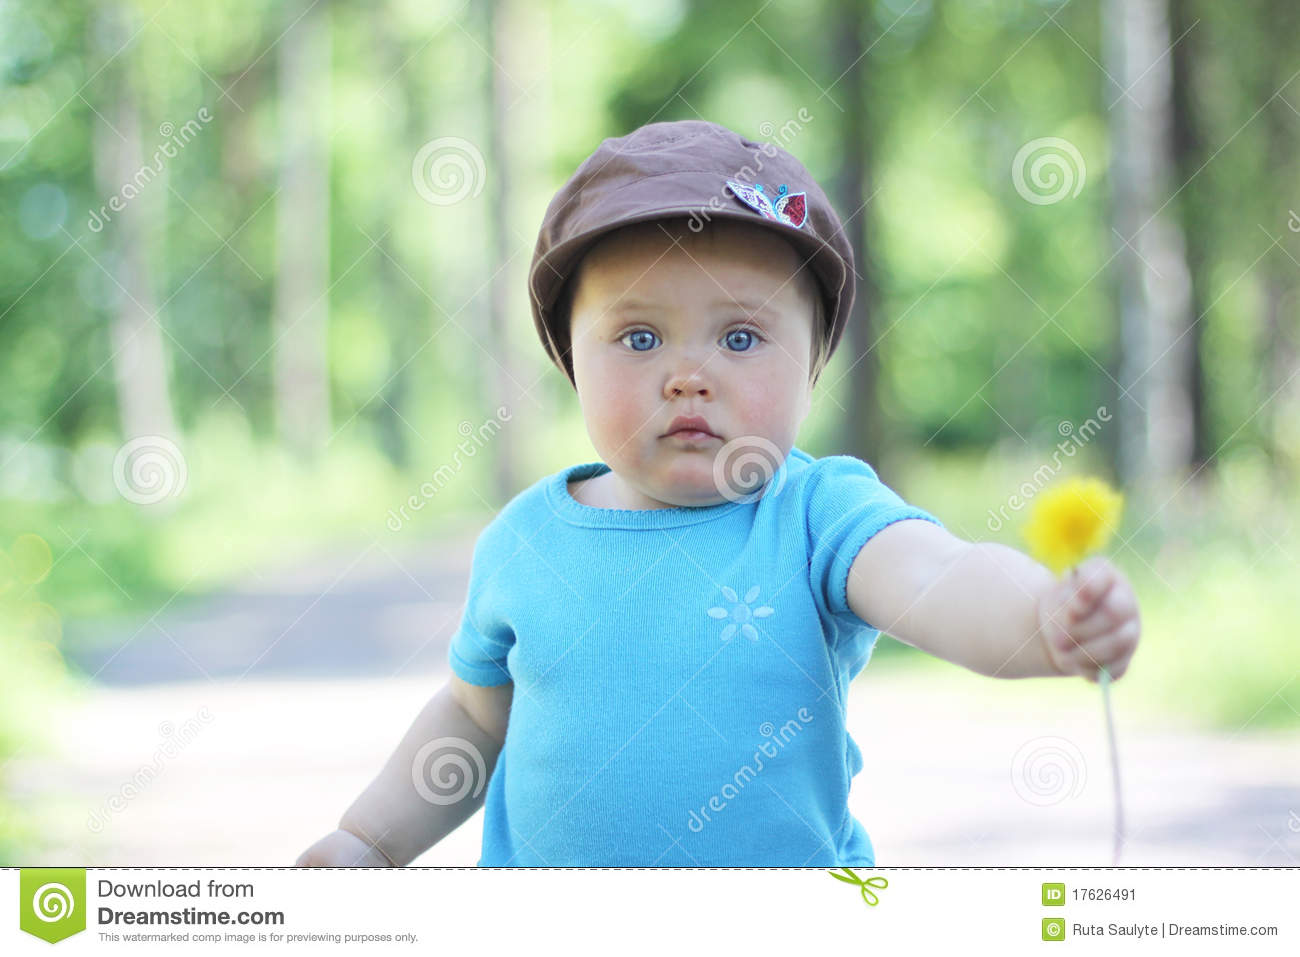 A baby holding a flower stock image. Image of yellow - 17626491